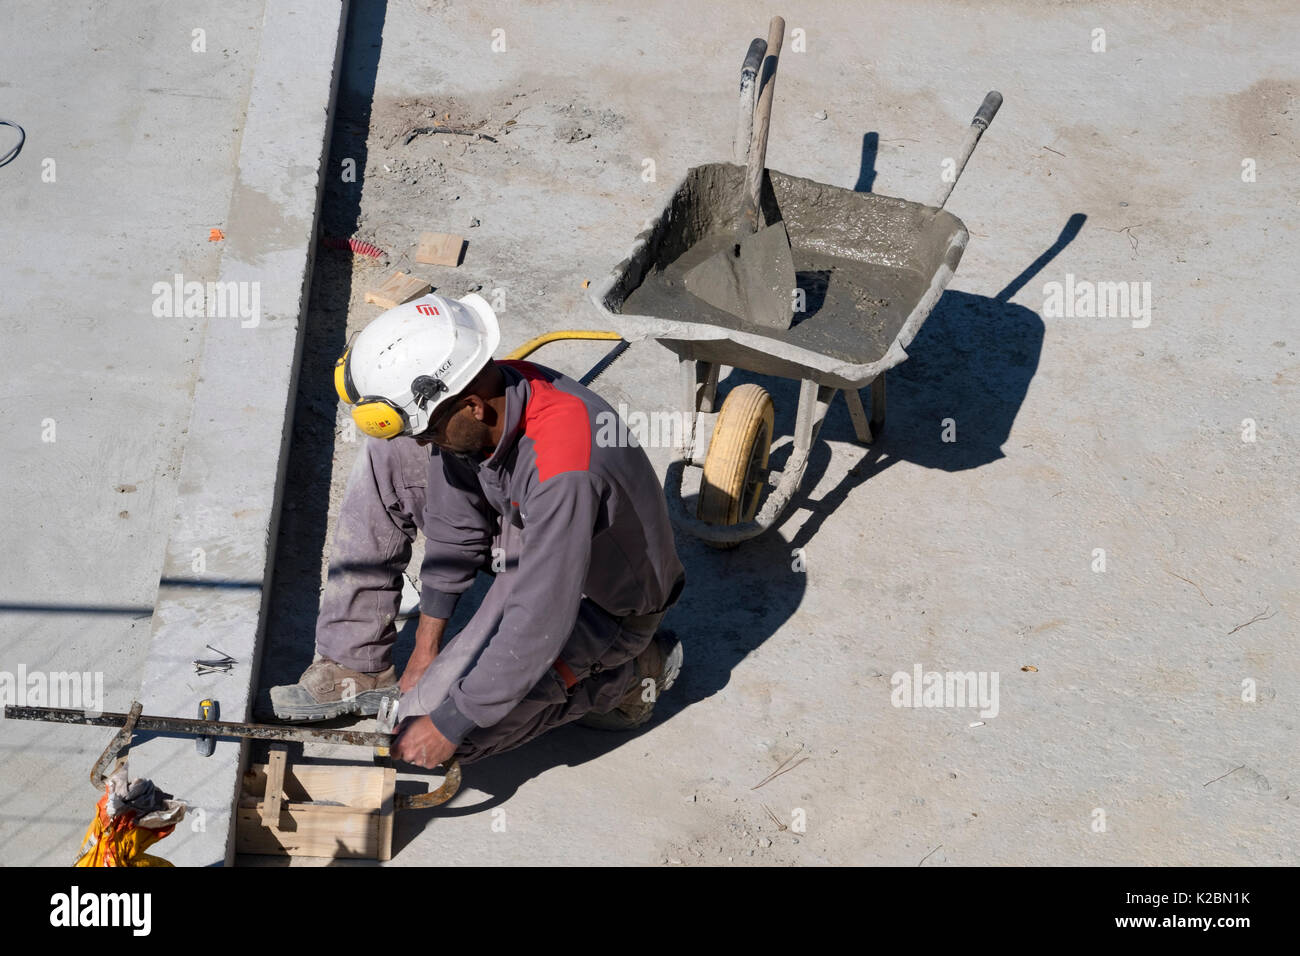 Construction laborer works on the details of building an in ground swimming pool - Stock Image